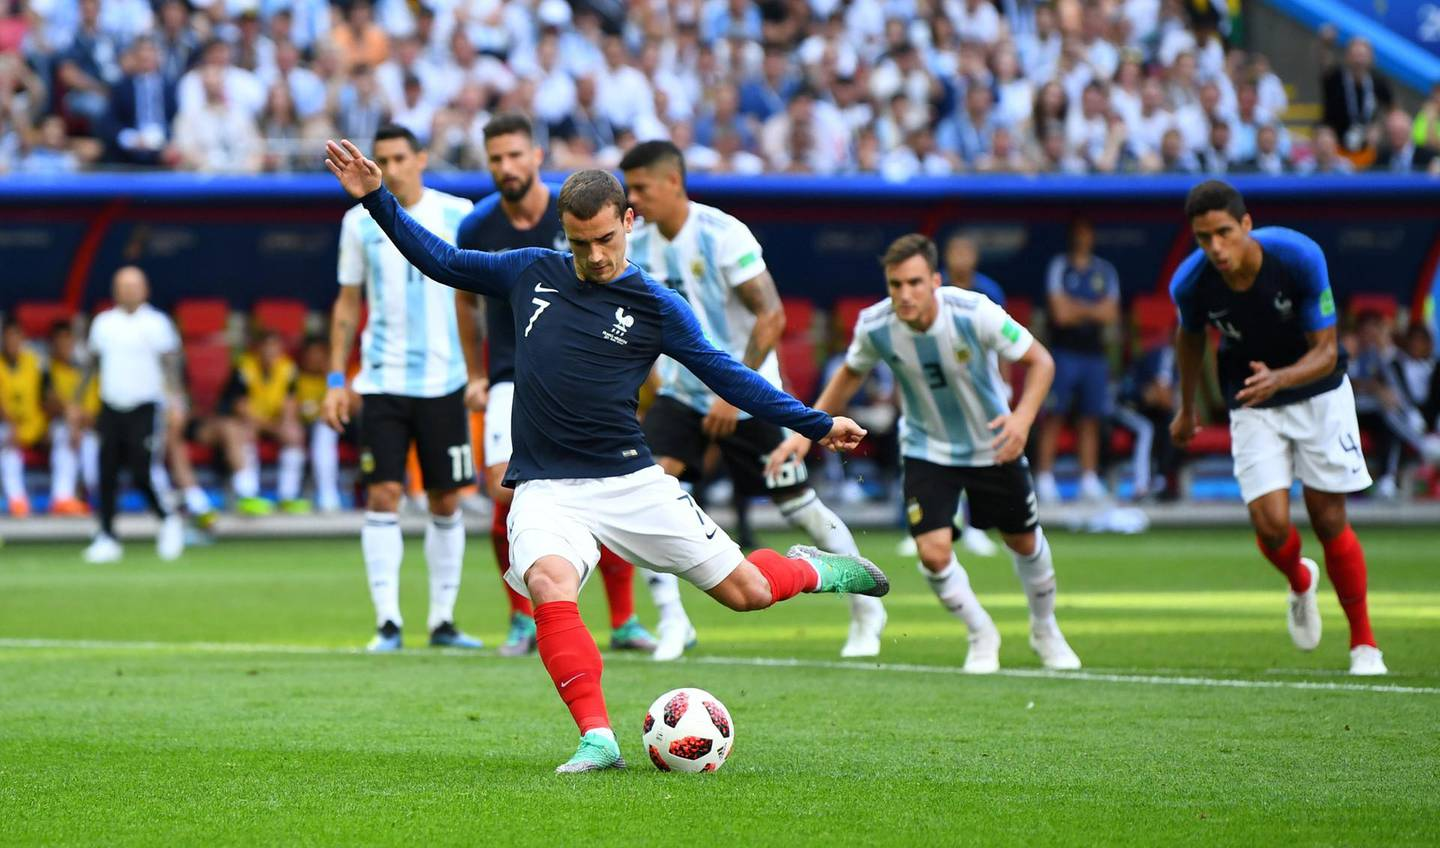 Soccer Football - World Cup - Round of 16 - France vs Argentina - Kazan Arena, Kazan, Russia - June 30, 2018  France's Antoine Griezmann scores their first goal from the penalty spot   REUTERS/Dylan Martinez